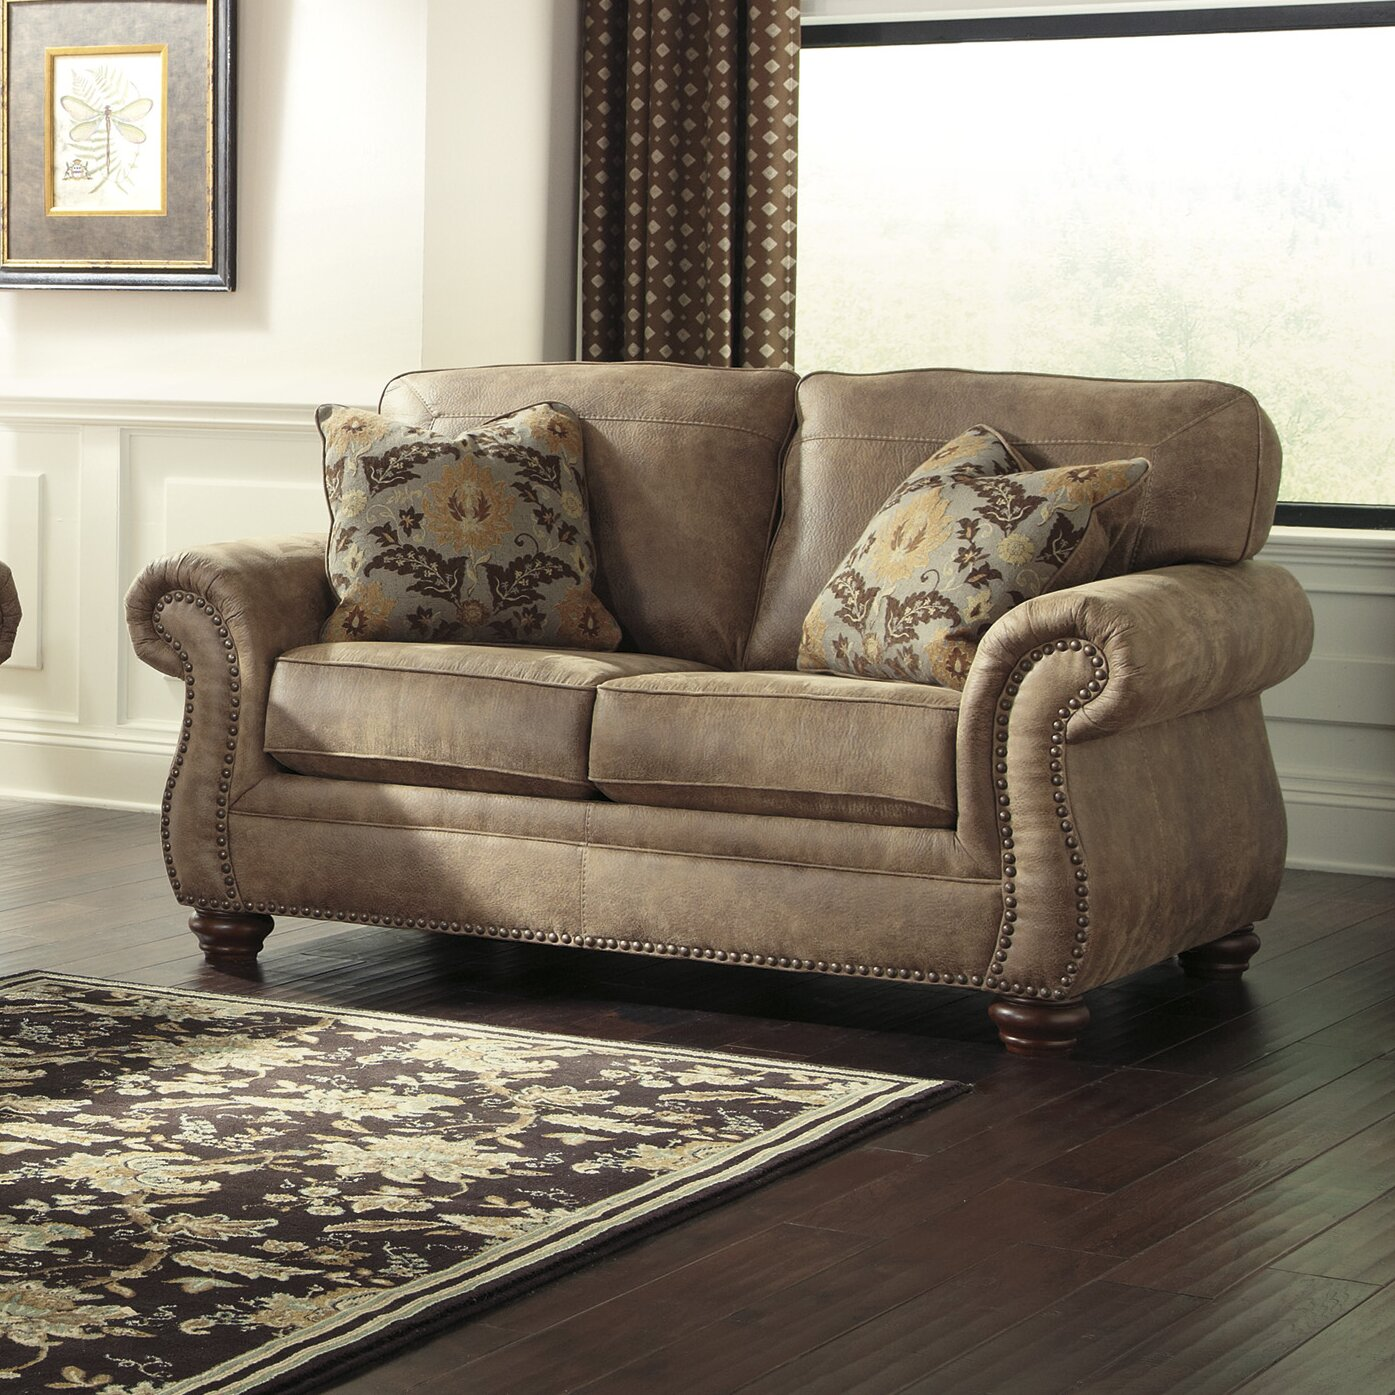 Ashley Signature Collection: Signature Design By Ashley Bessemer Living Room Collection